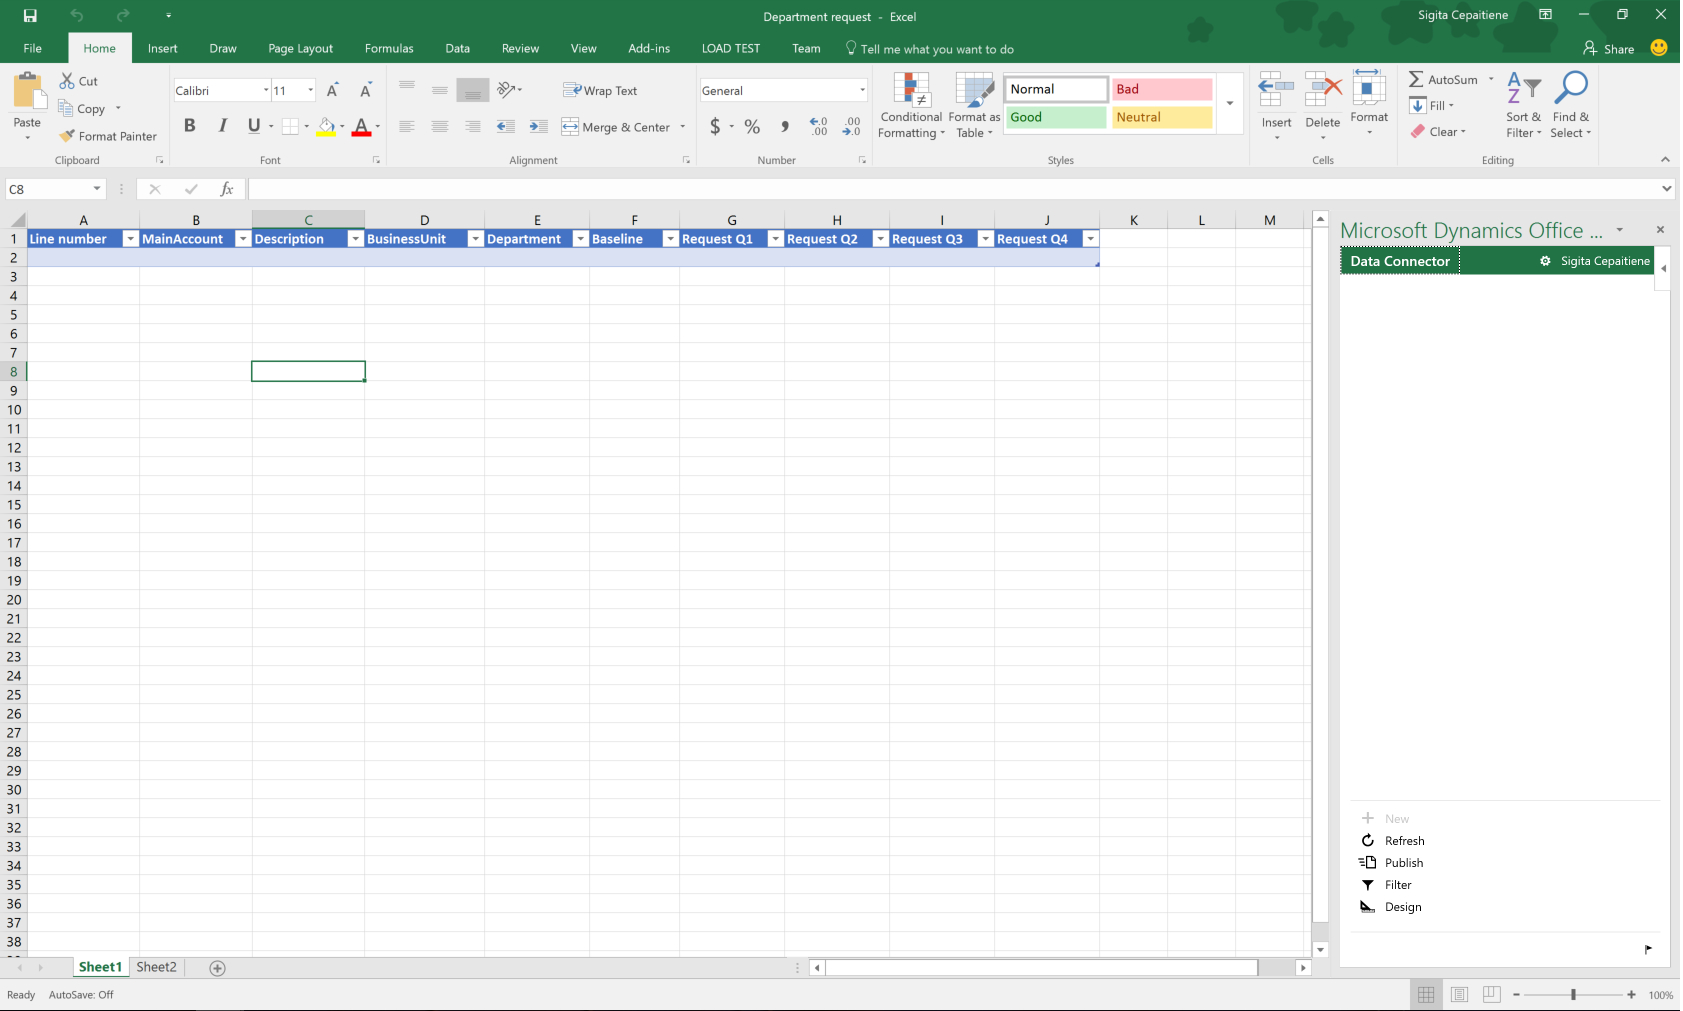 Budget Planning Templates For Excel   Finance & Operations Within Data Spreadsheet Template